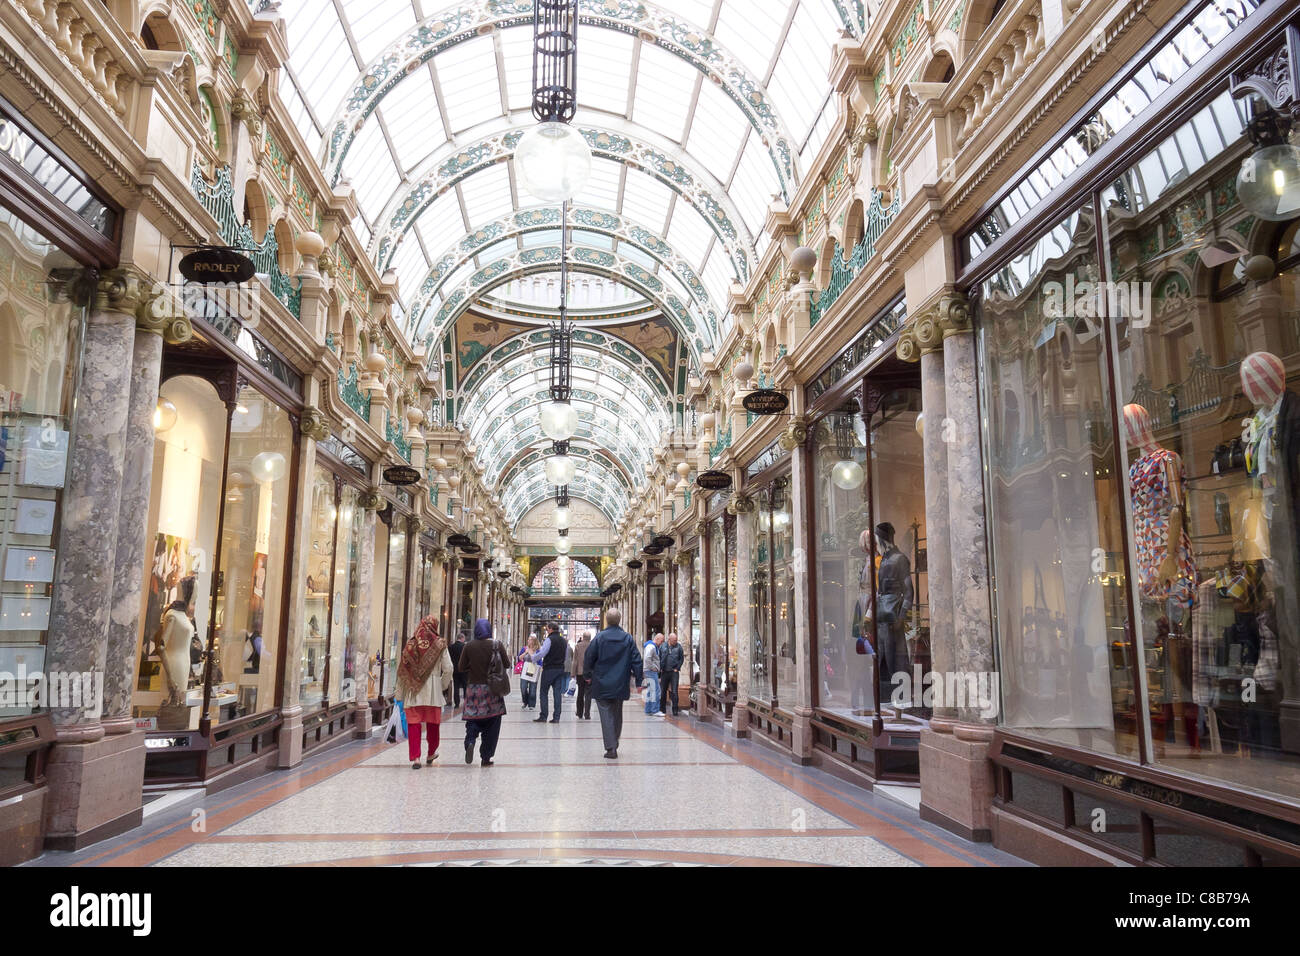 Shopping Arcade, in the Victorian Quarter, in Leeds UK - Stock Image